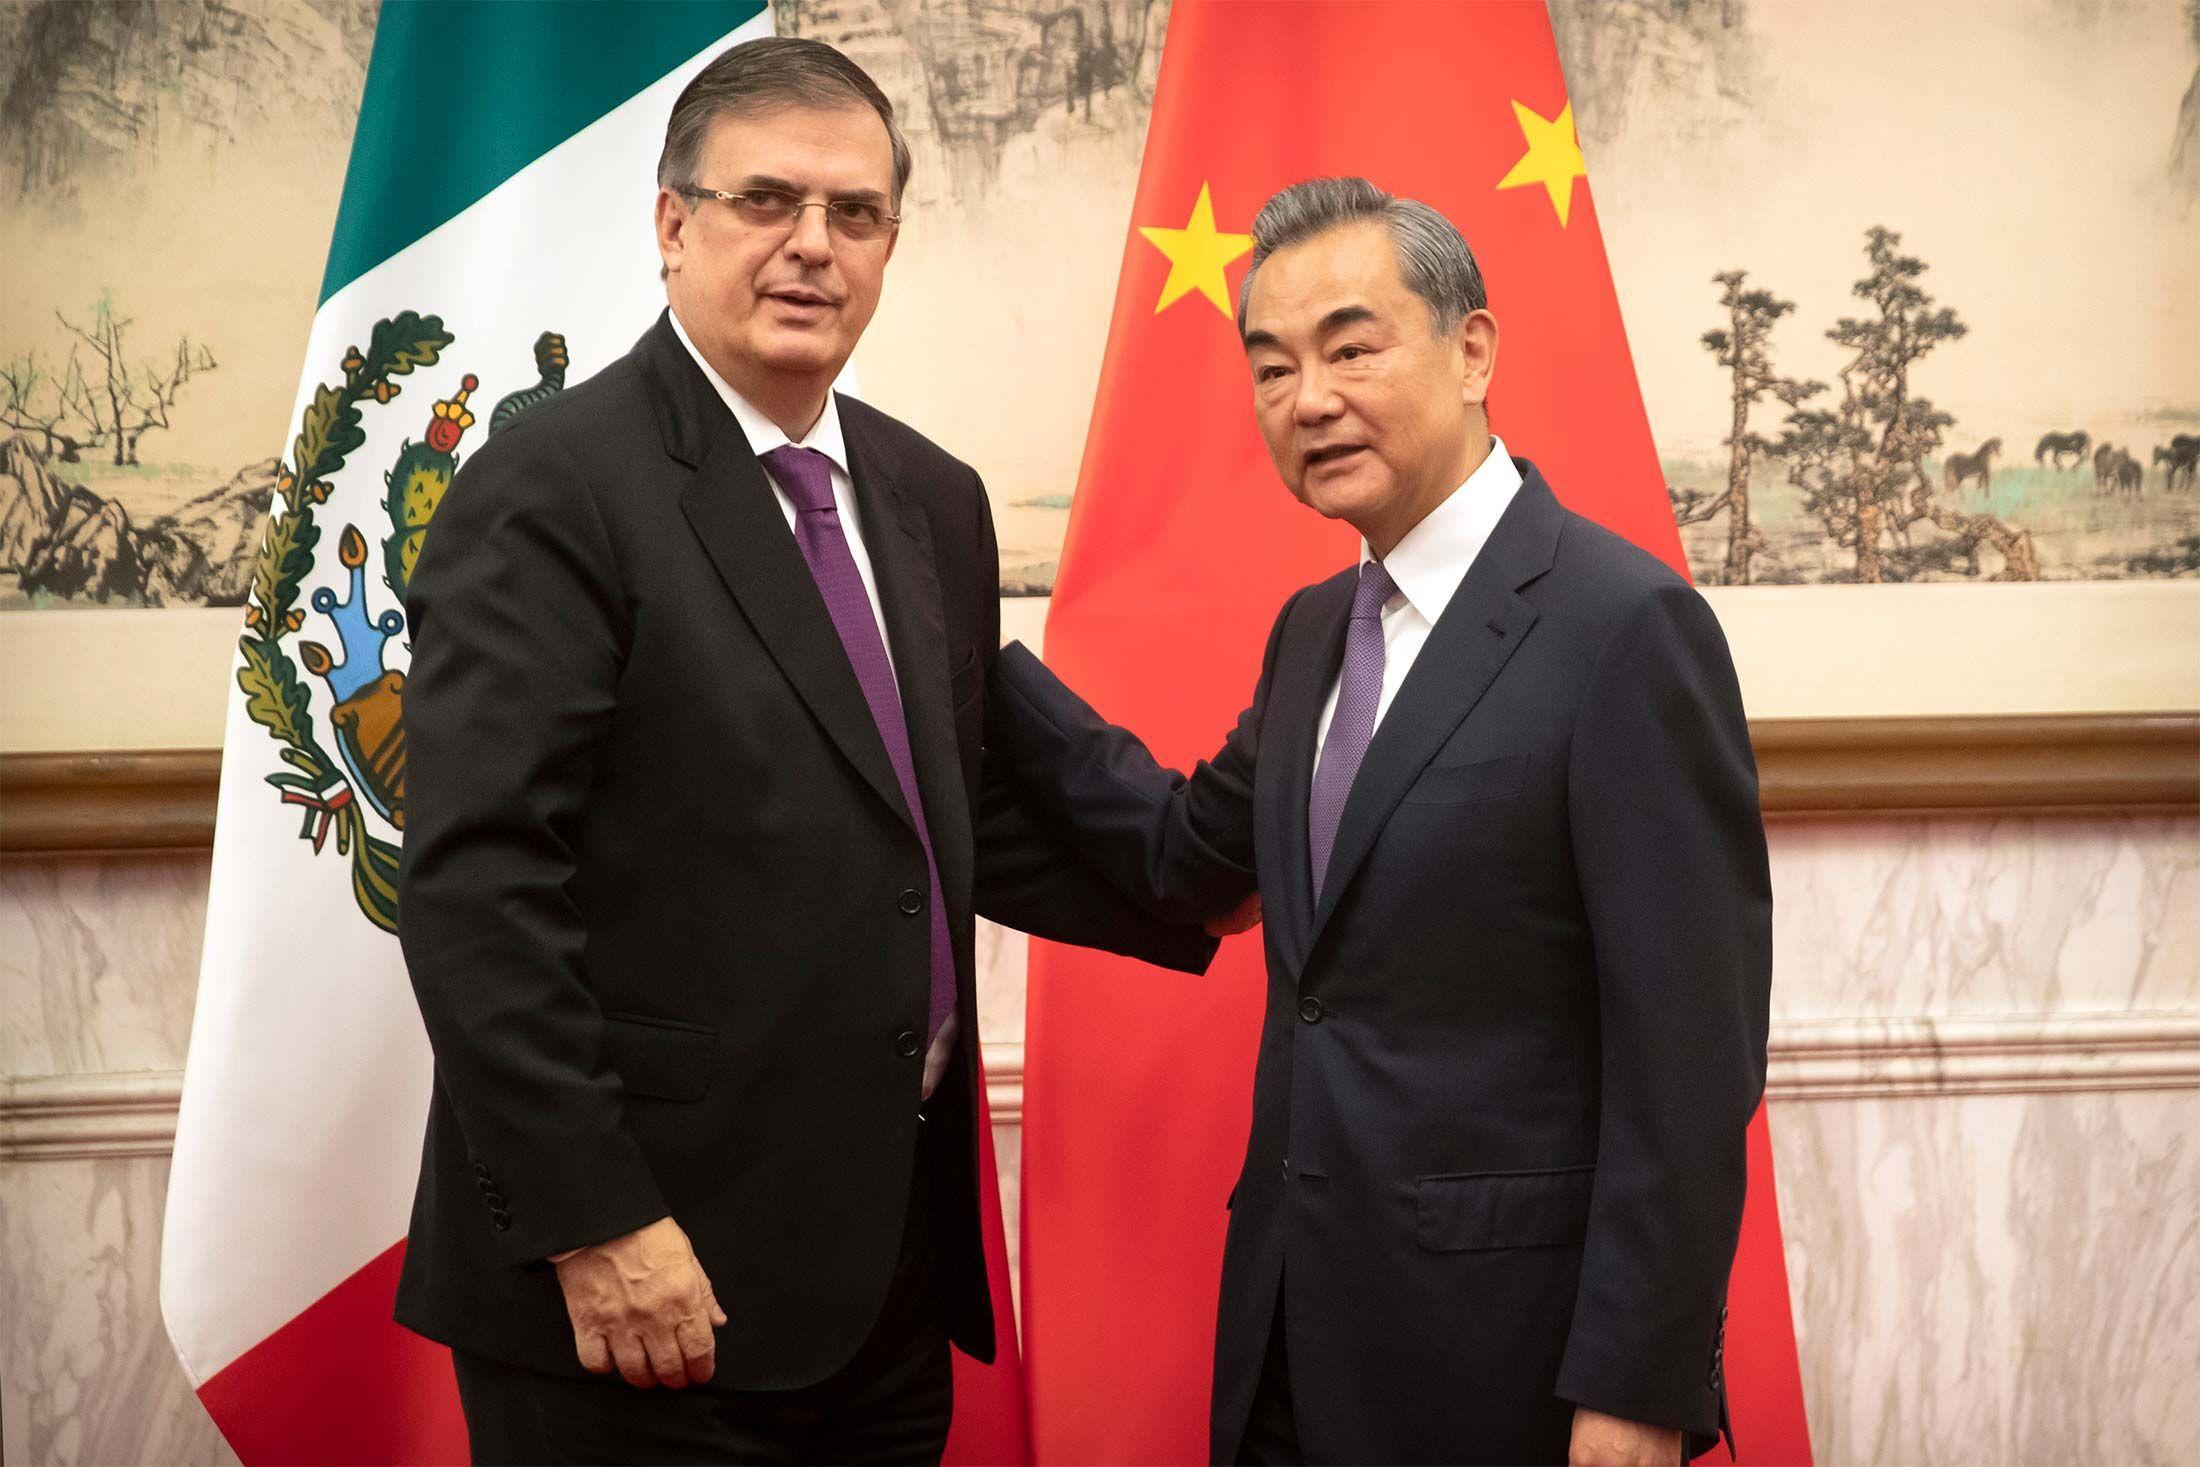 China and Mexico Lay Out Broad Plans to Strengthen Relations